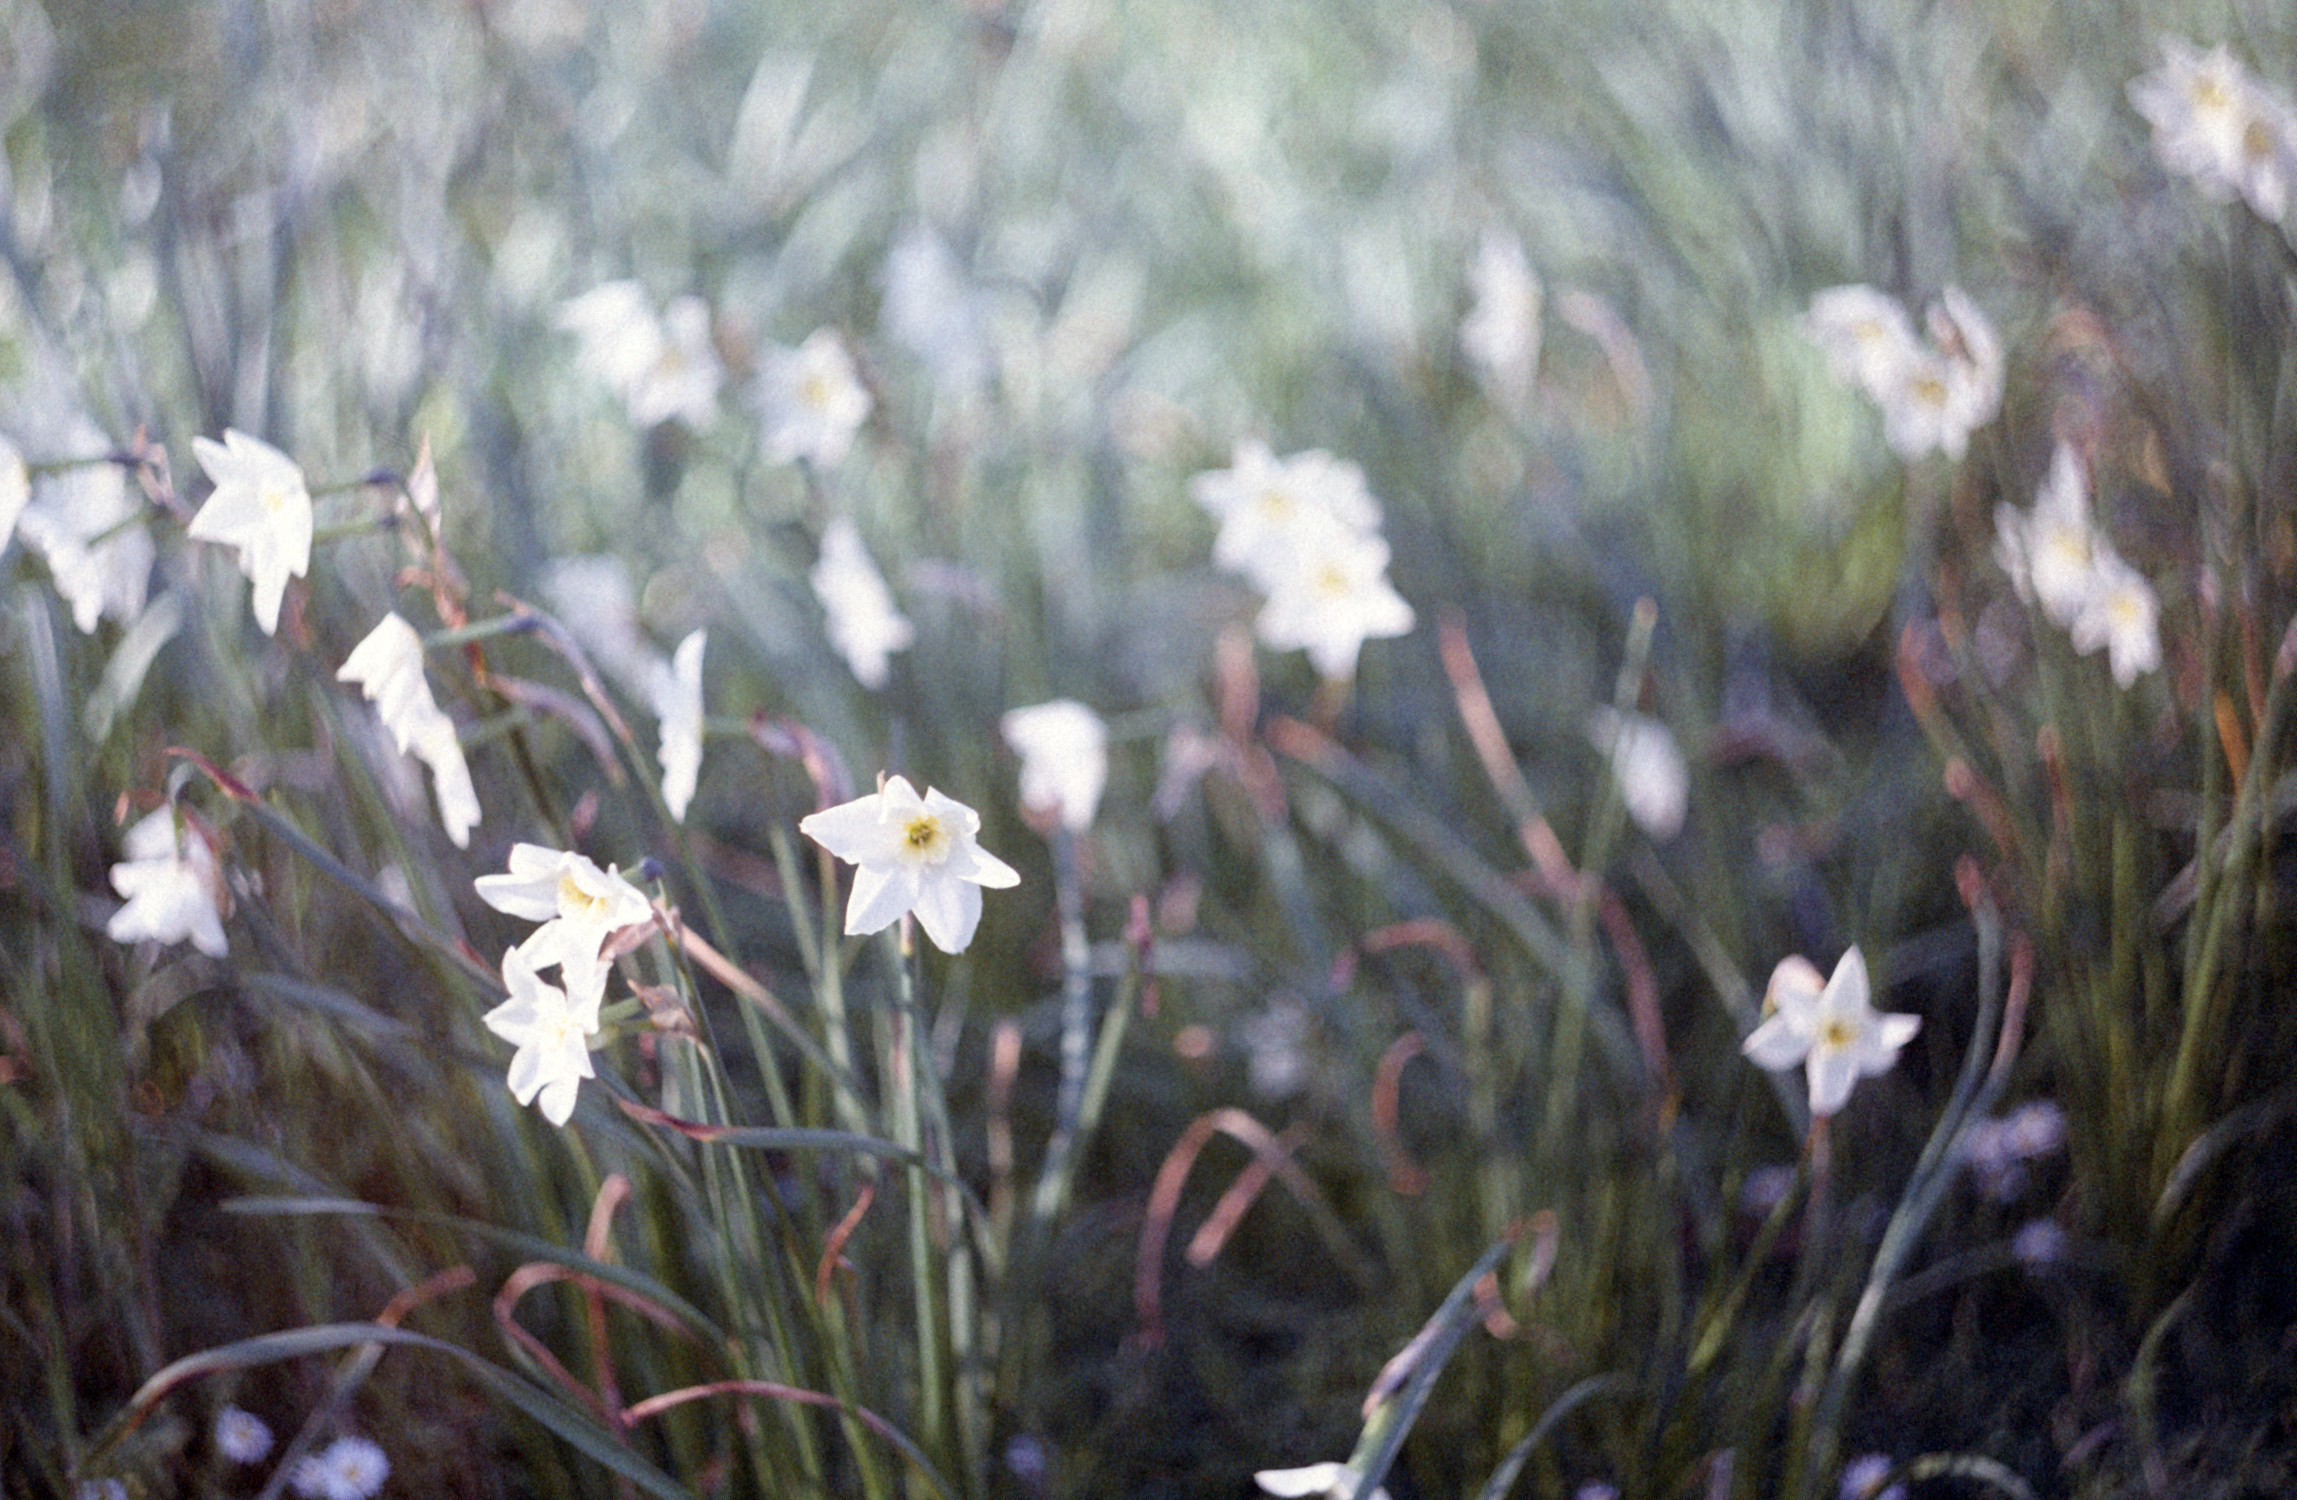 Blurred flowers (Pic: Stephen Dowling)